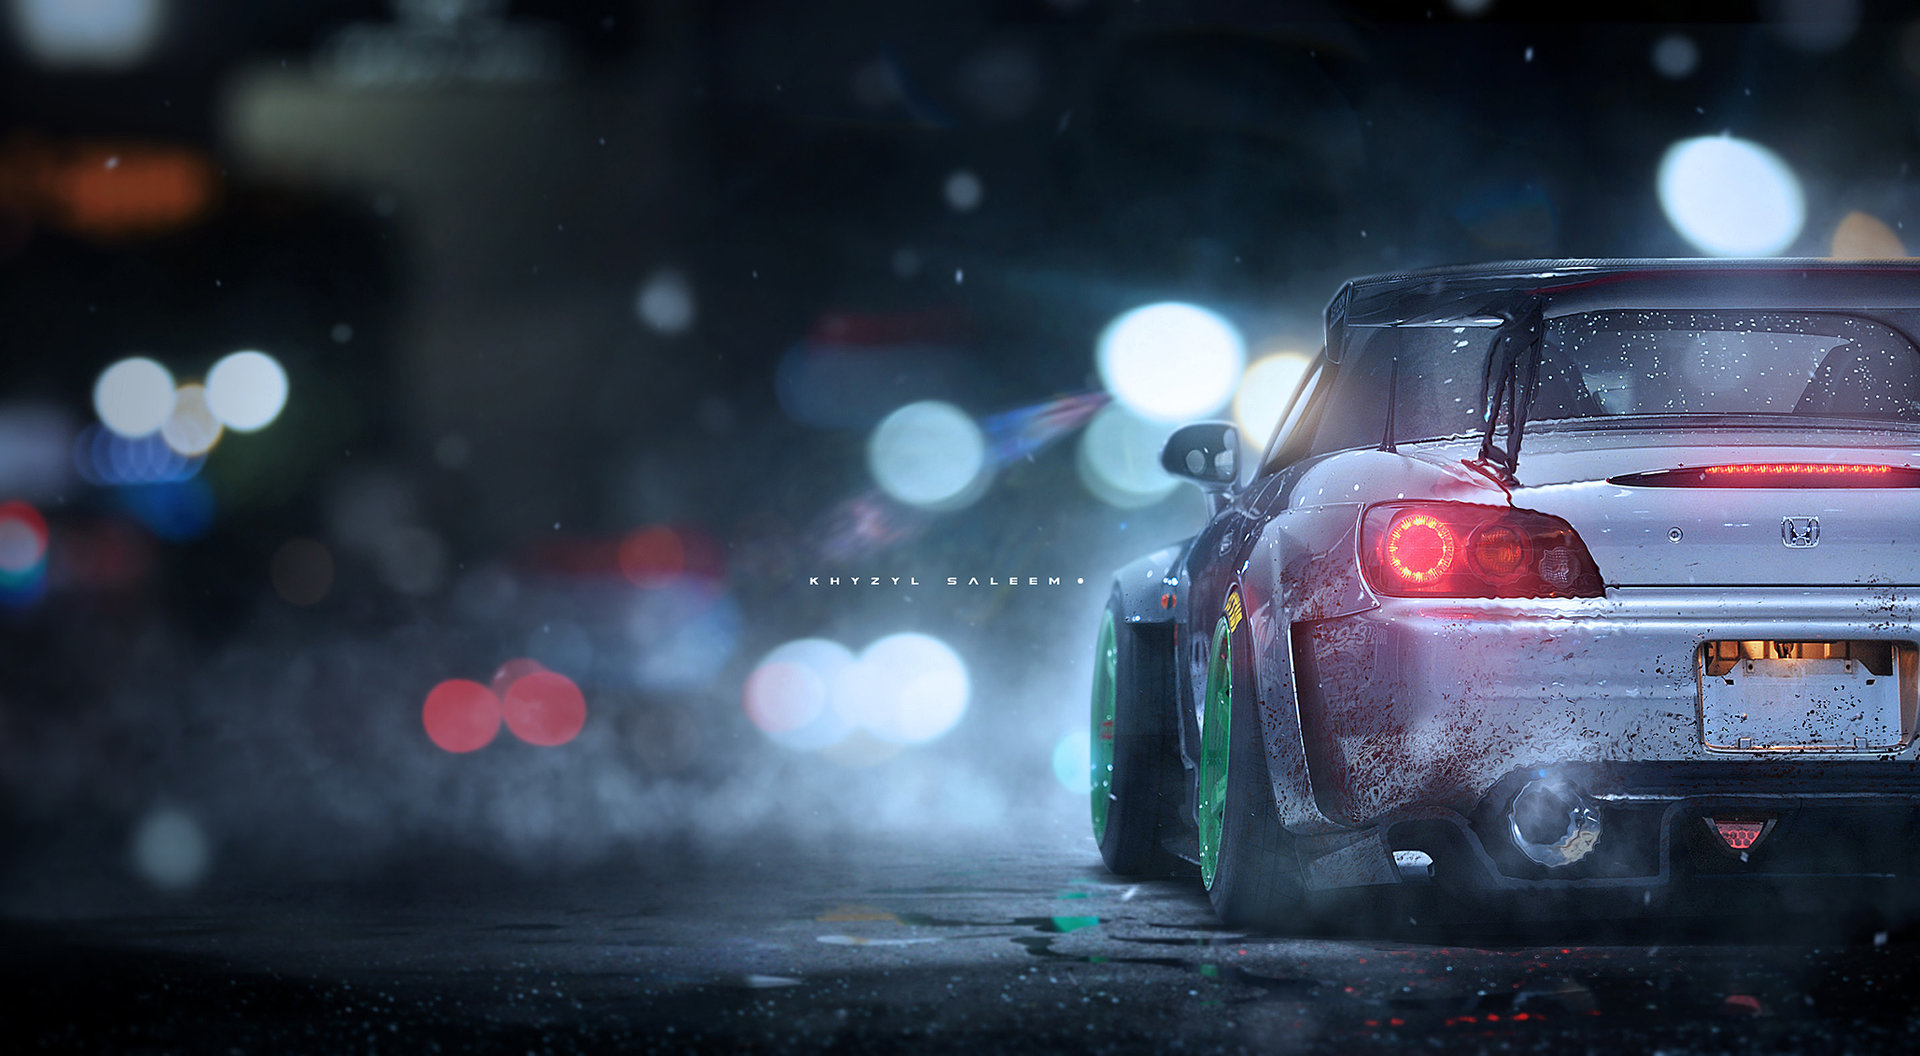 Game Car Wallpaper